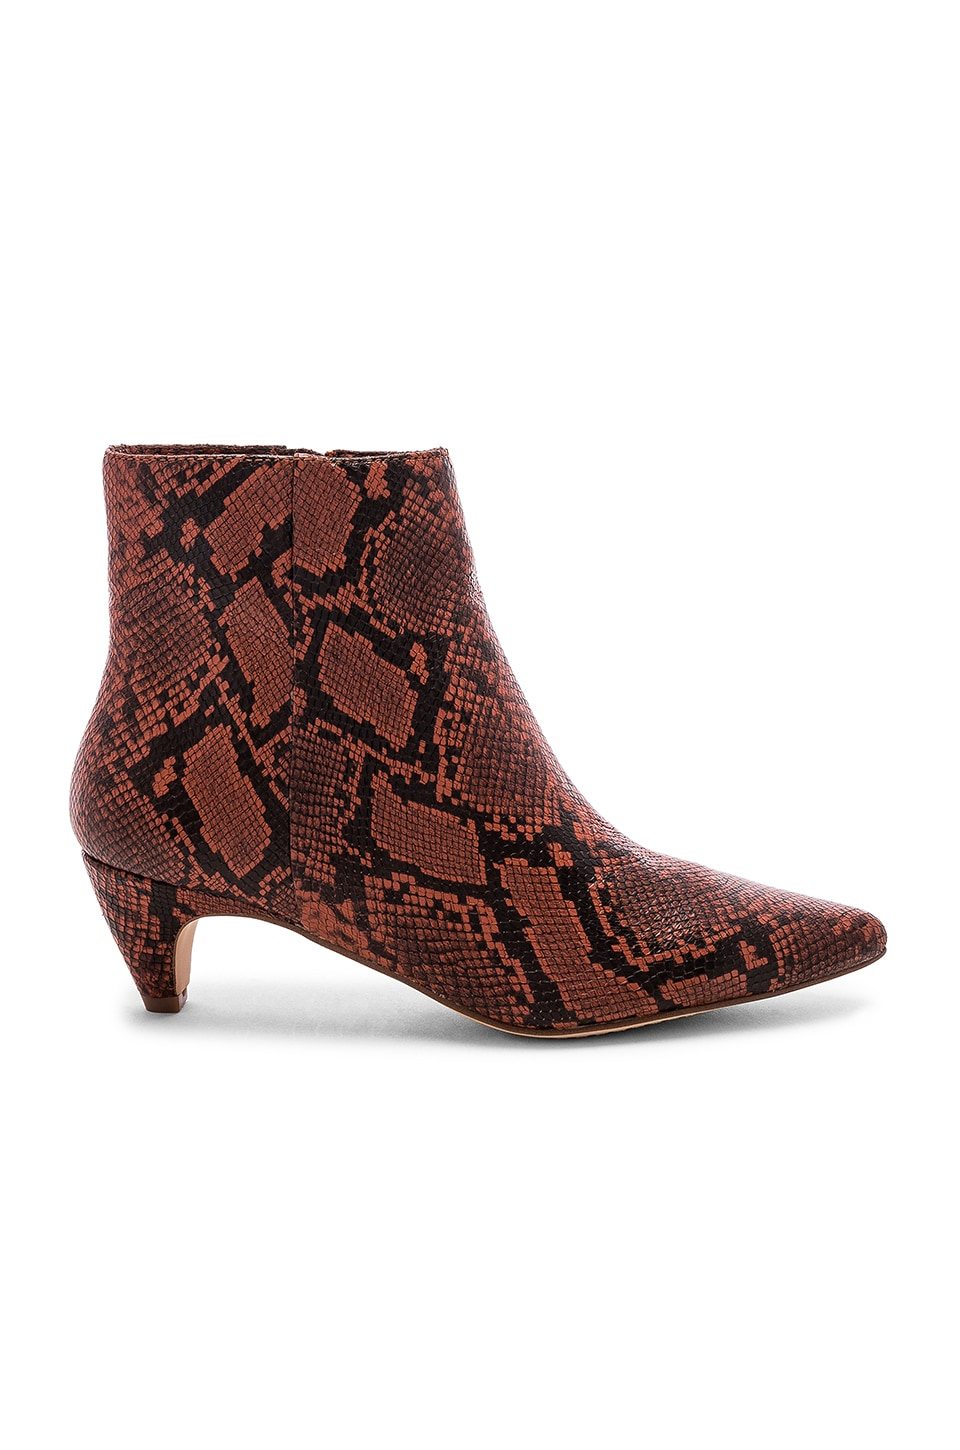 Splendid Nettie Bootie in Brick